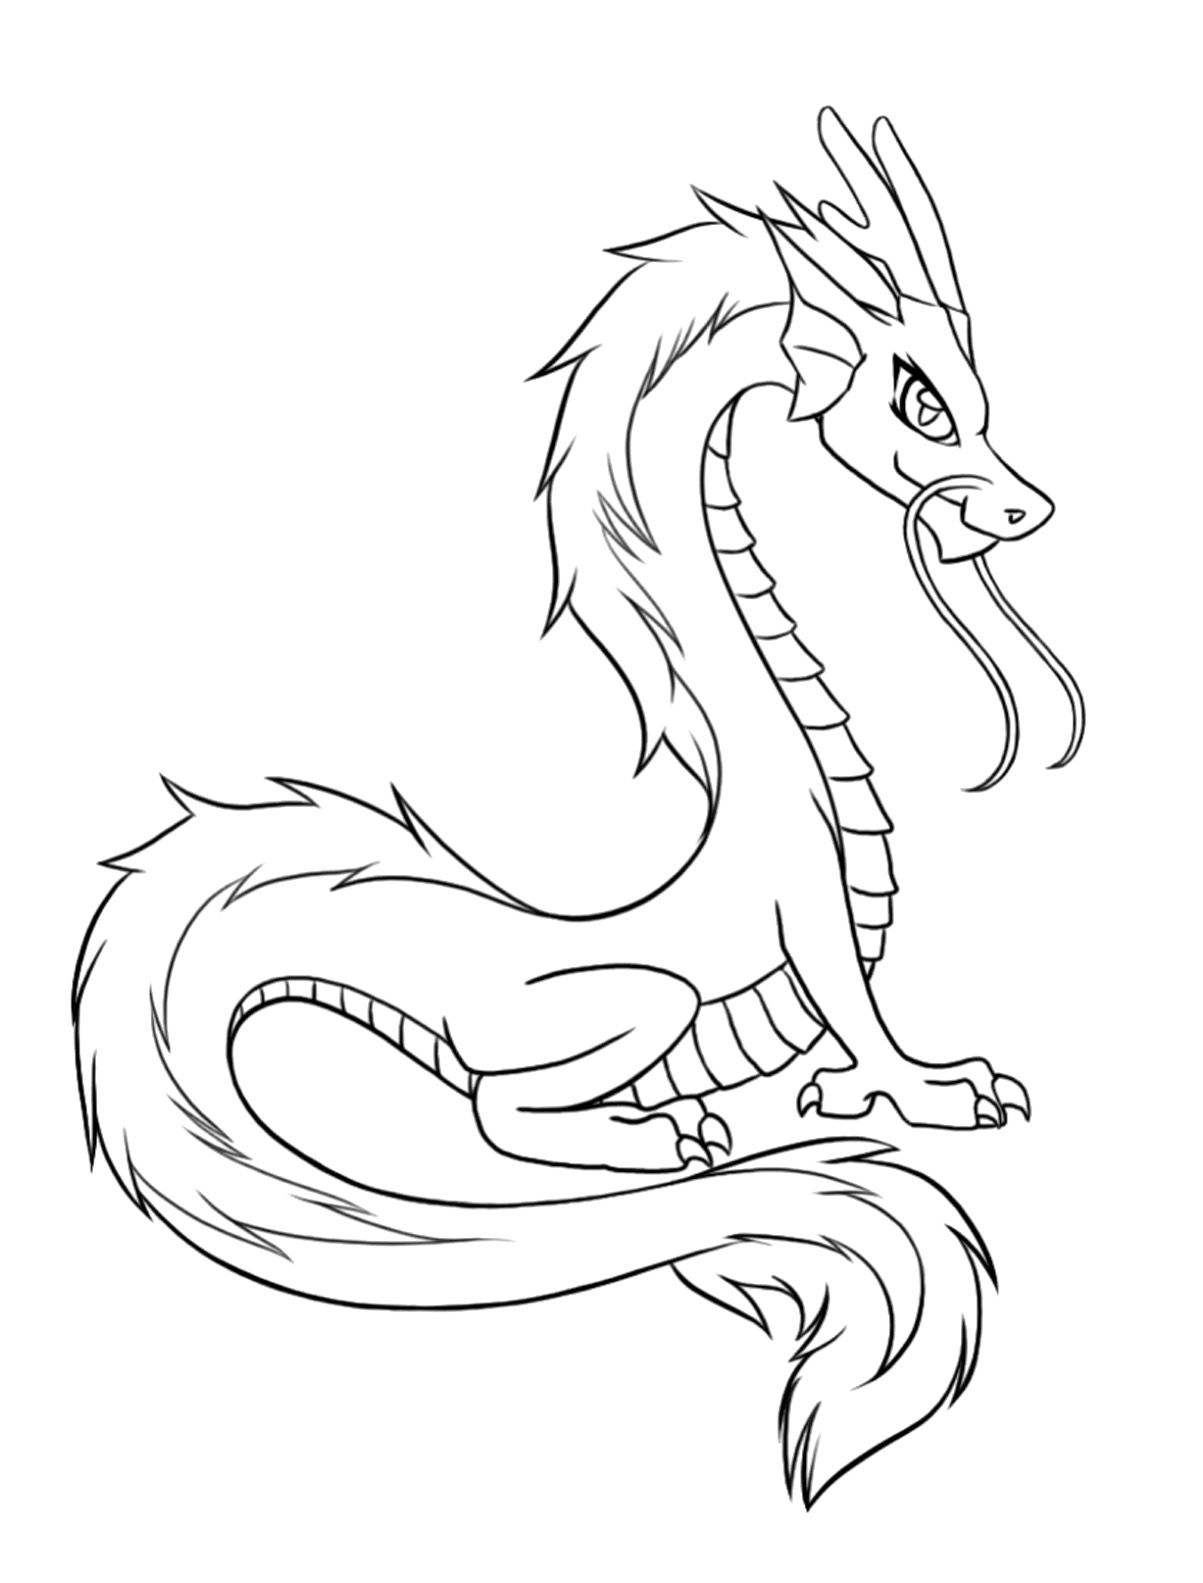 dragon colouring pictures dragon coloring pages for adults best coloring pages for pictures dragon colouring